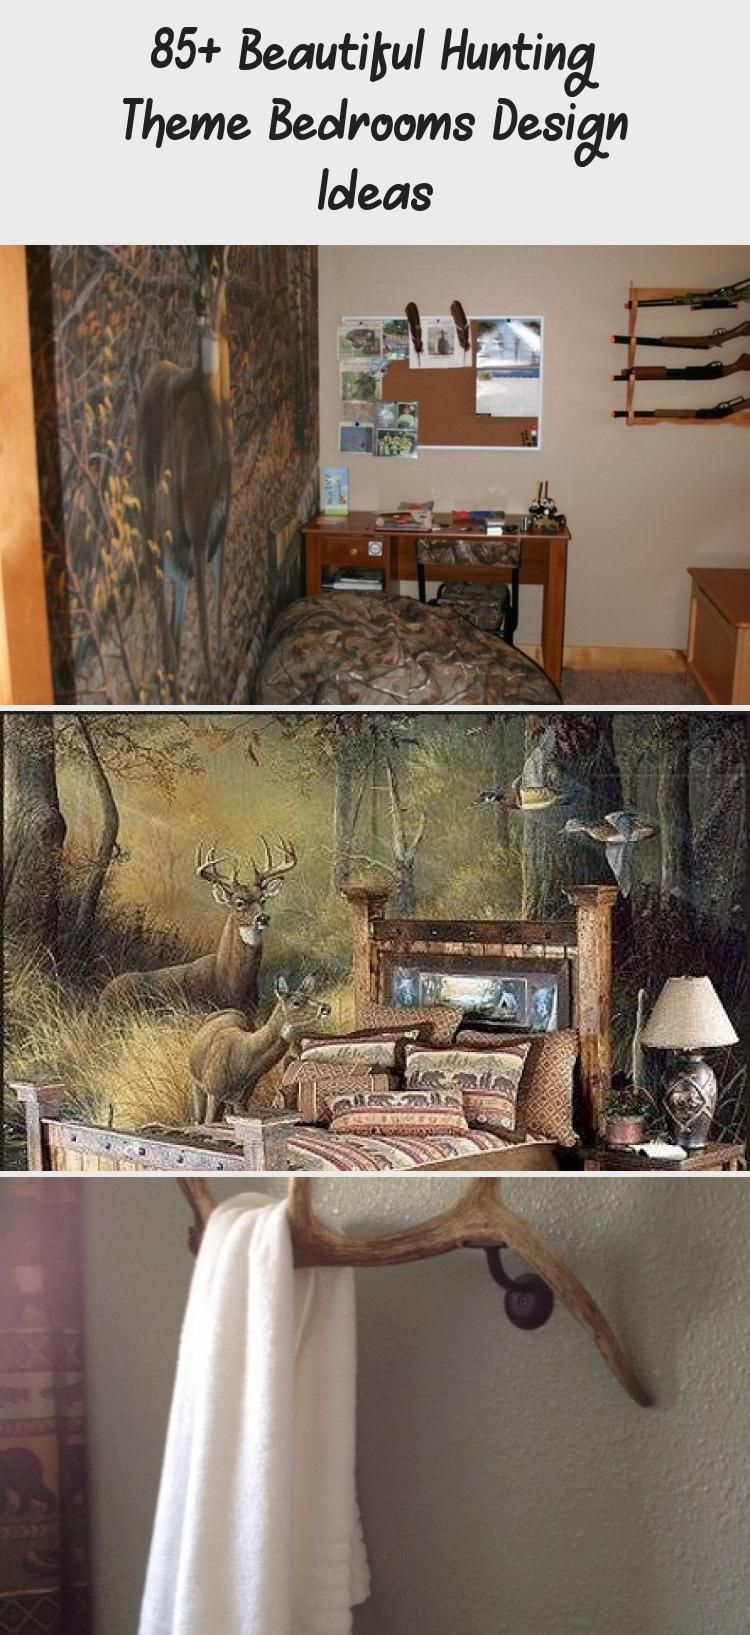 85+ Beautiful Hunting Theme Bedrooms Design Ideas in 2020 ...